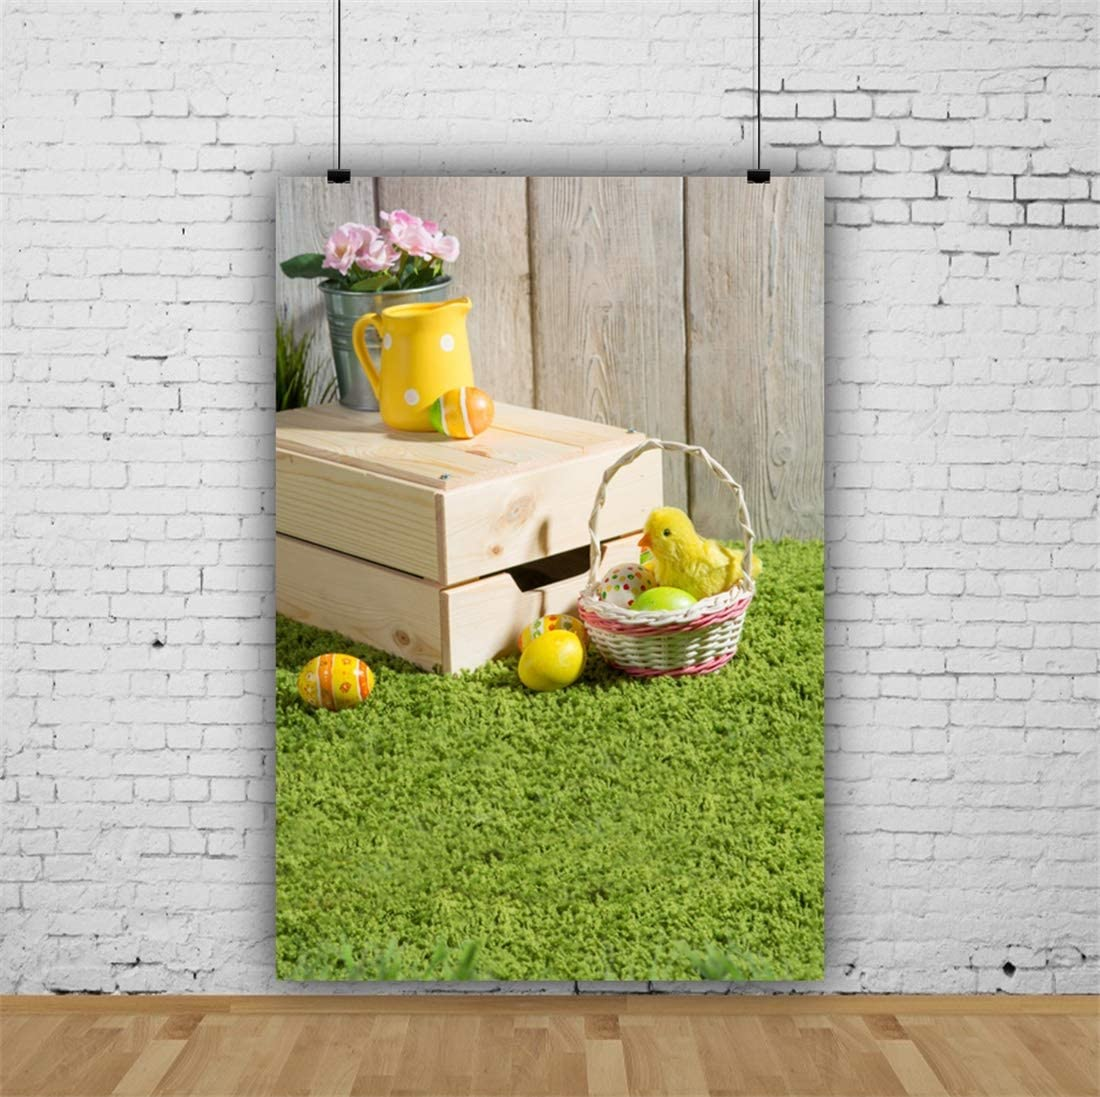 Yeele-Easter-Backdrop 3x5ft Happy Easter Photography Background Eggs Grassland Colorful Flower Photo Backdrops Pictures Studio Props Wallpaper